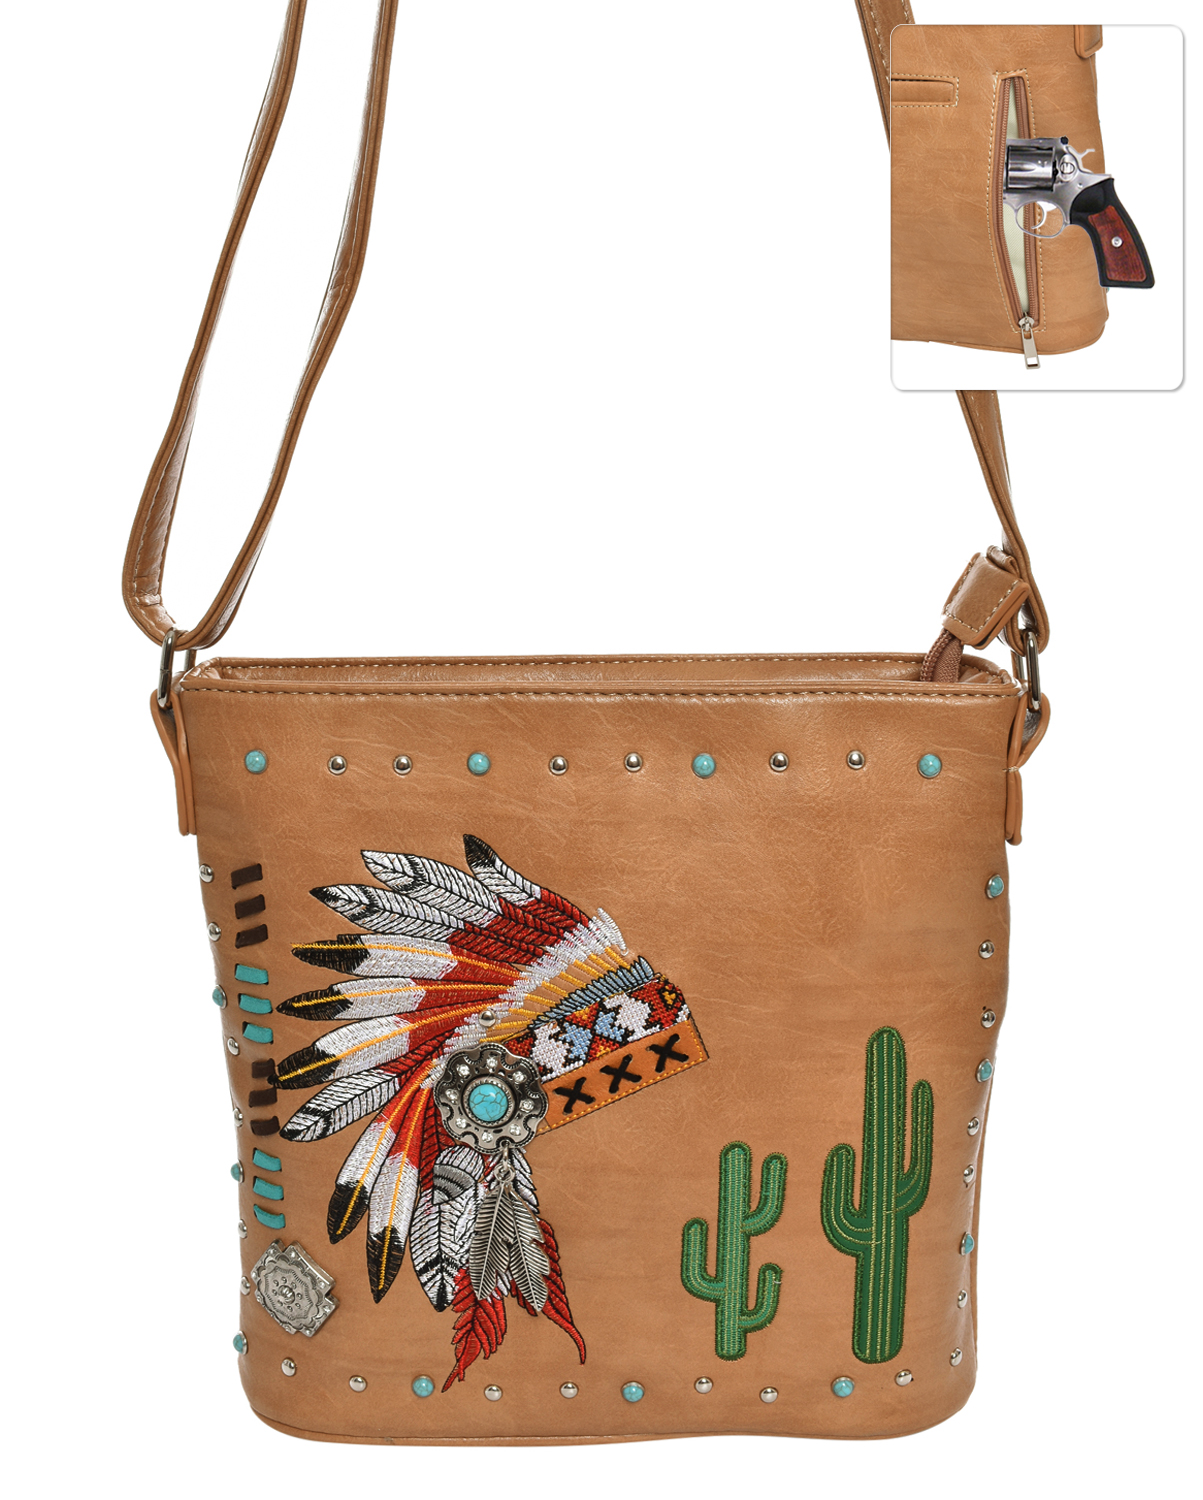 G605W179(TAN)-wholesale-messenger-bag-concealed-native-indian-chief-headdress-rhinestone-turquoise-concho-cactus(0).jpg